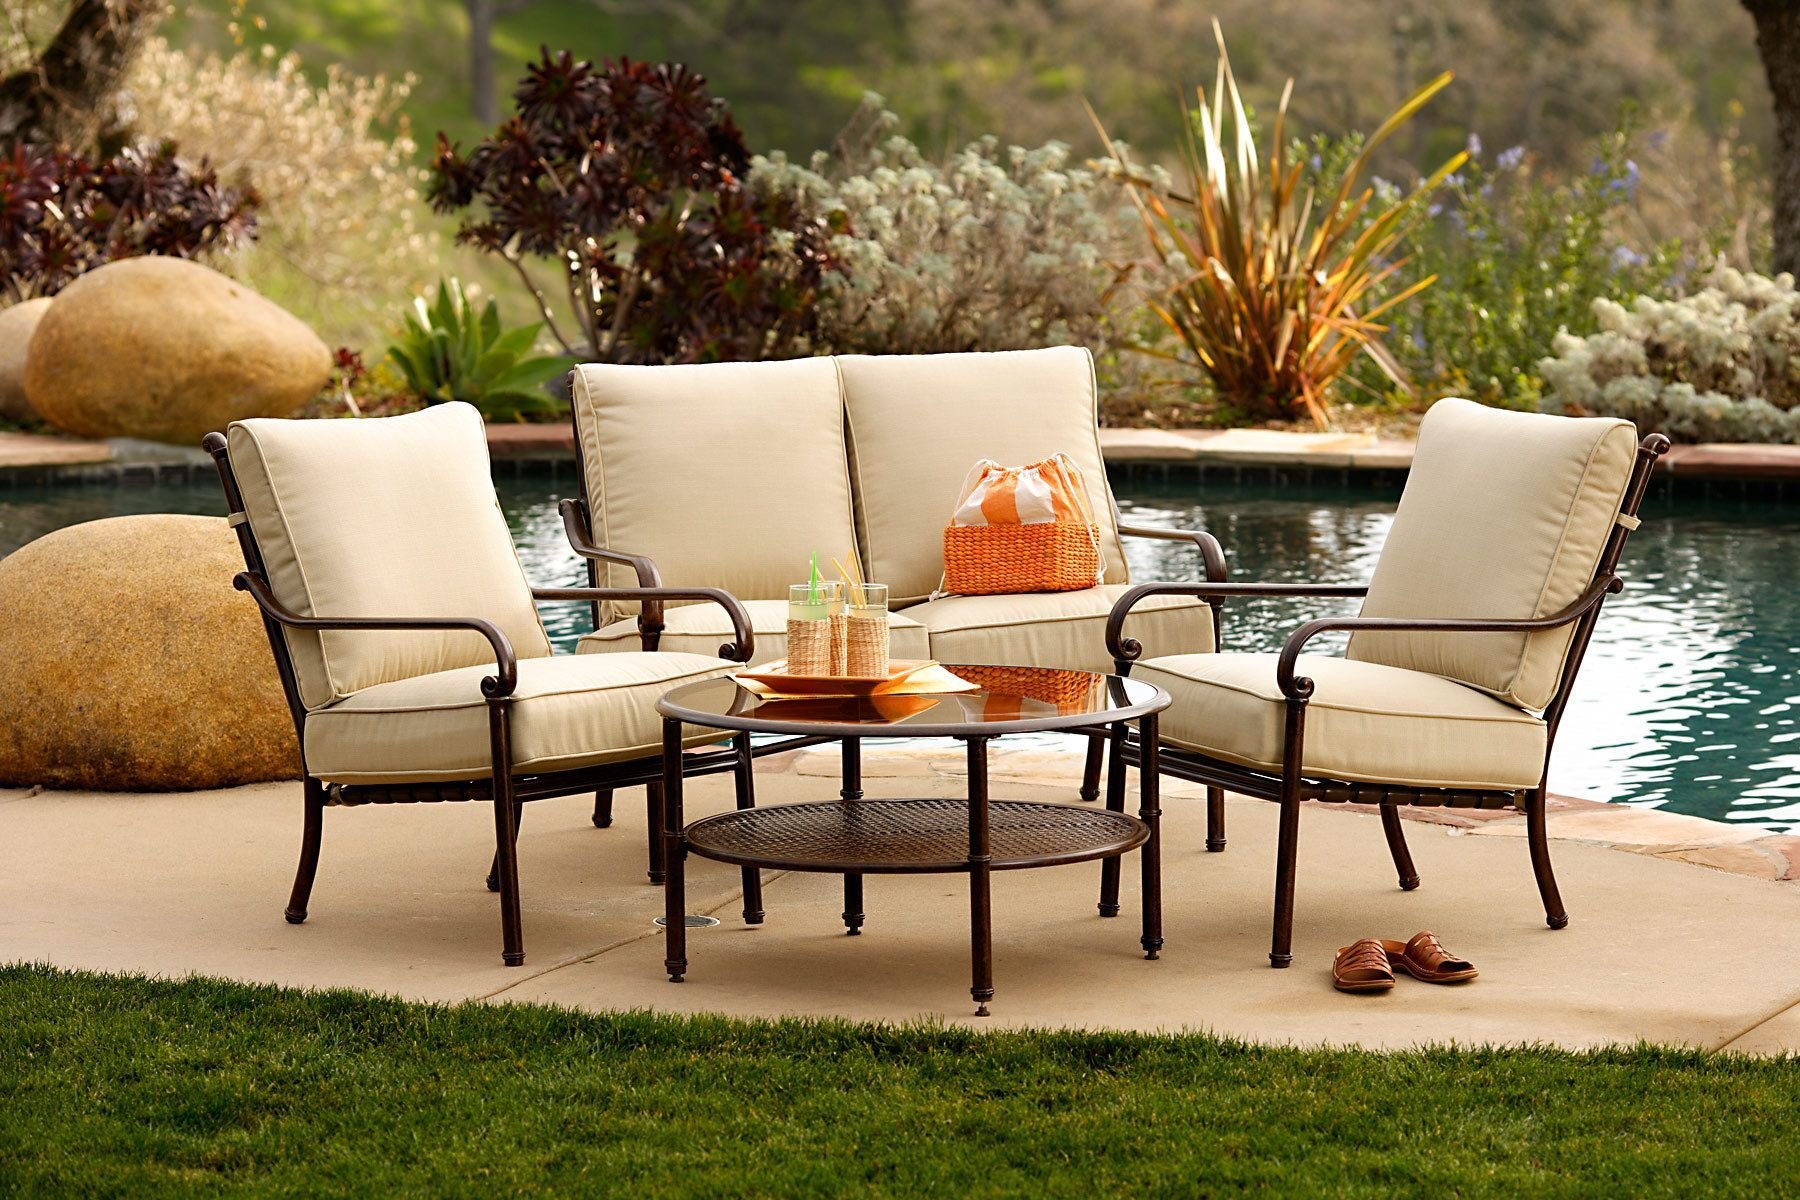 2e84714e23716a9f09ccfb90f63f8481 Top Result 52 Lovely Sectional Patio Furniture Clearance Photography 2017 Pkt6